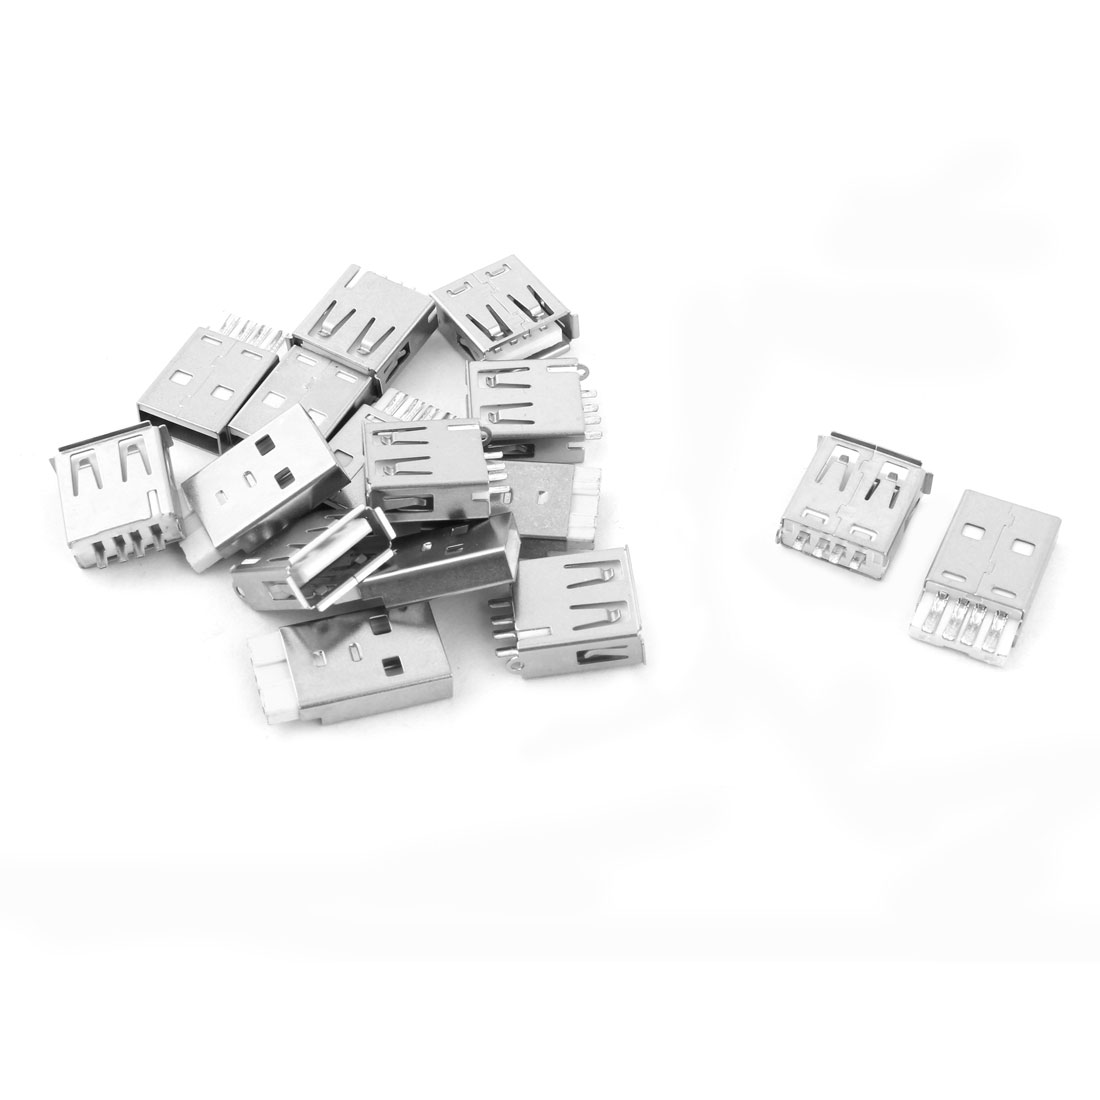 USB 2.0 Type A Solder Female 4 Pins Male Connector Socket Silver Tone 8 Pairs